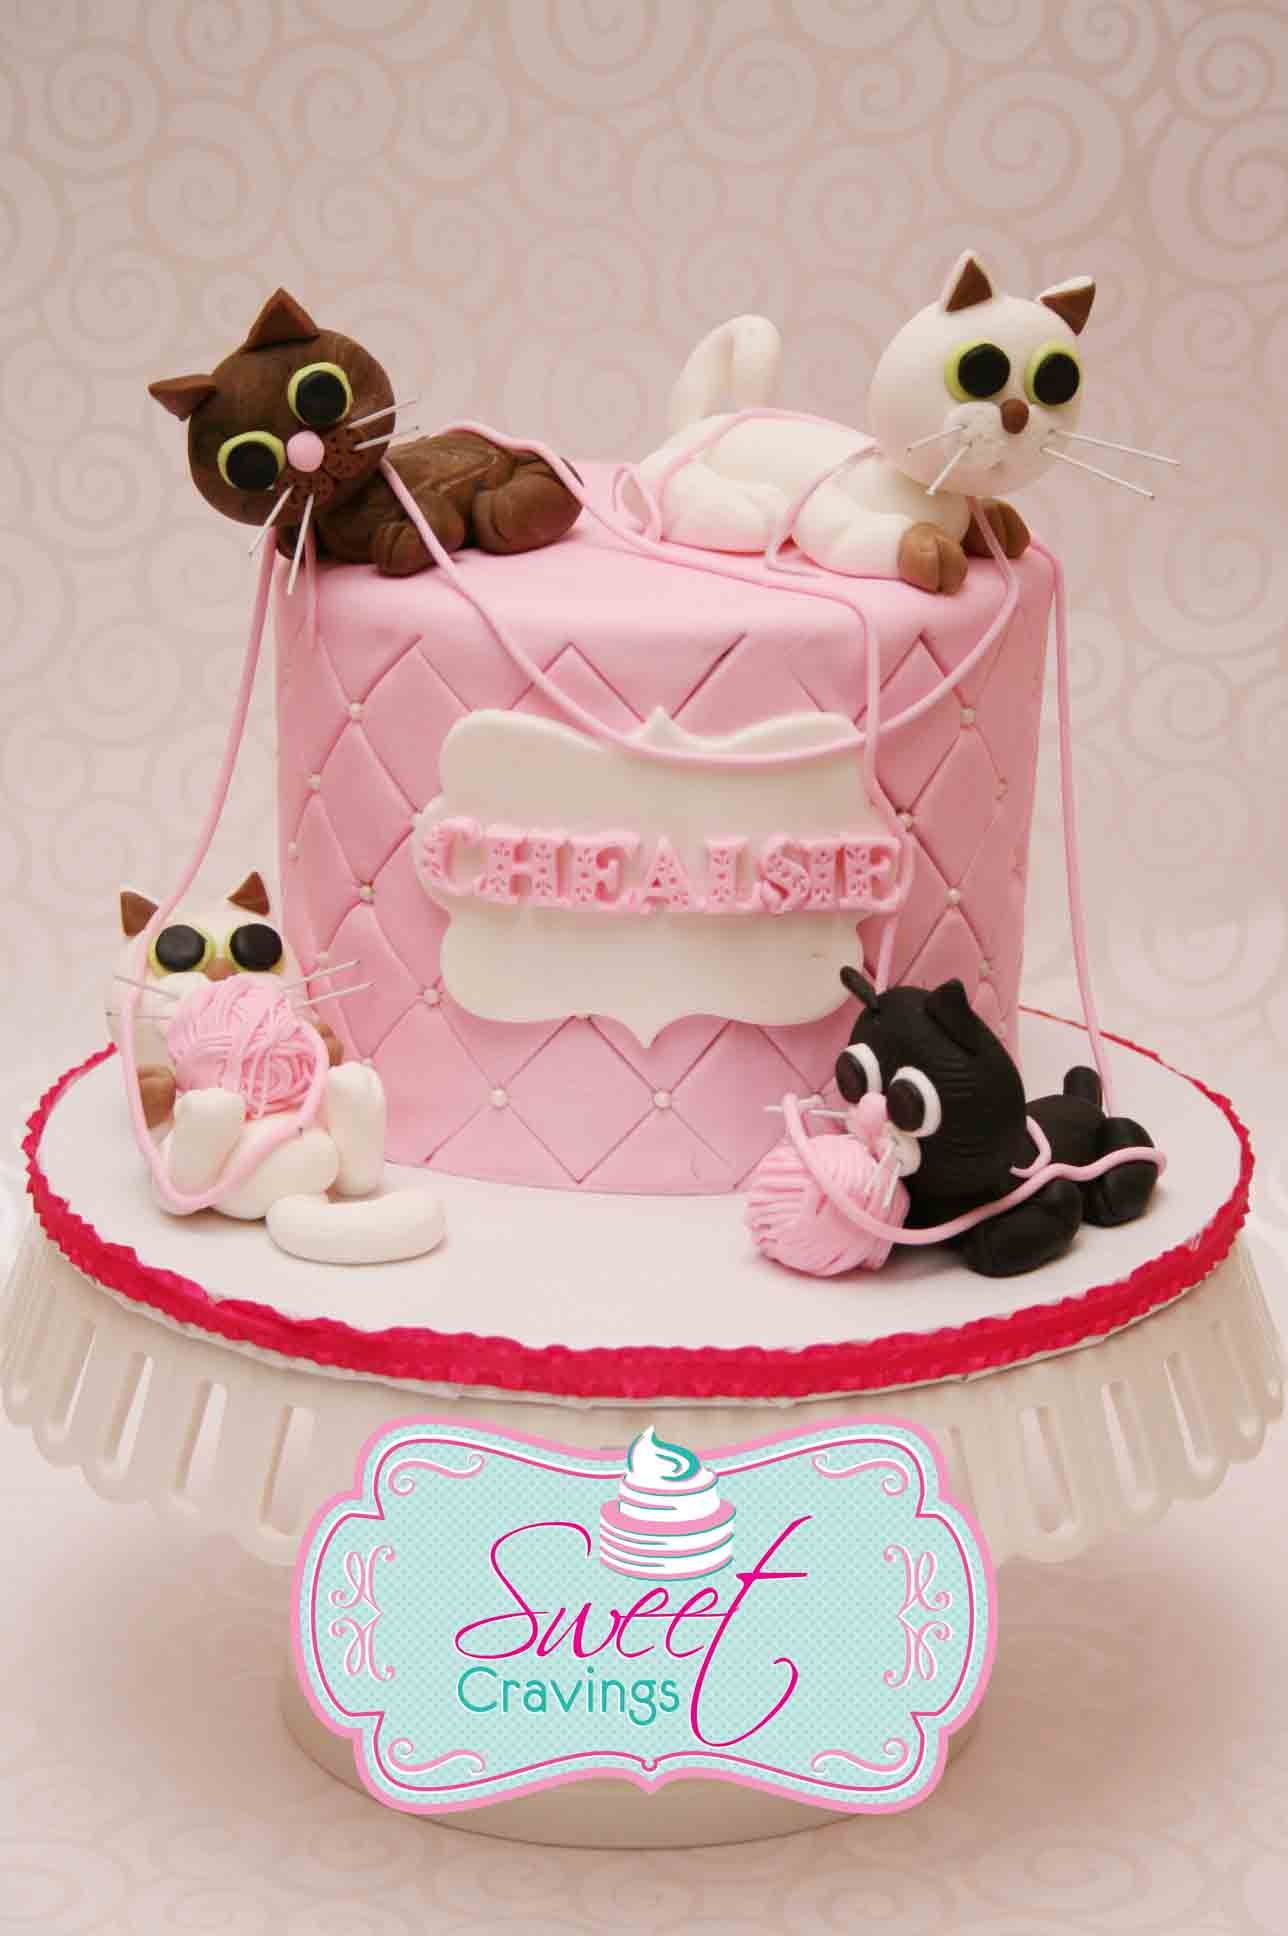 Some interesting kids birthday cake ideas different types of kids - Fondant Cat Birthday Cake And Like Omg Get Some Yourself Some Pawtastic Adorable Cat Apparel